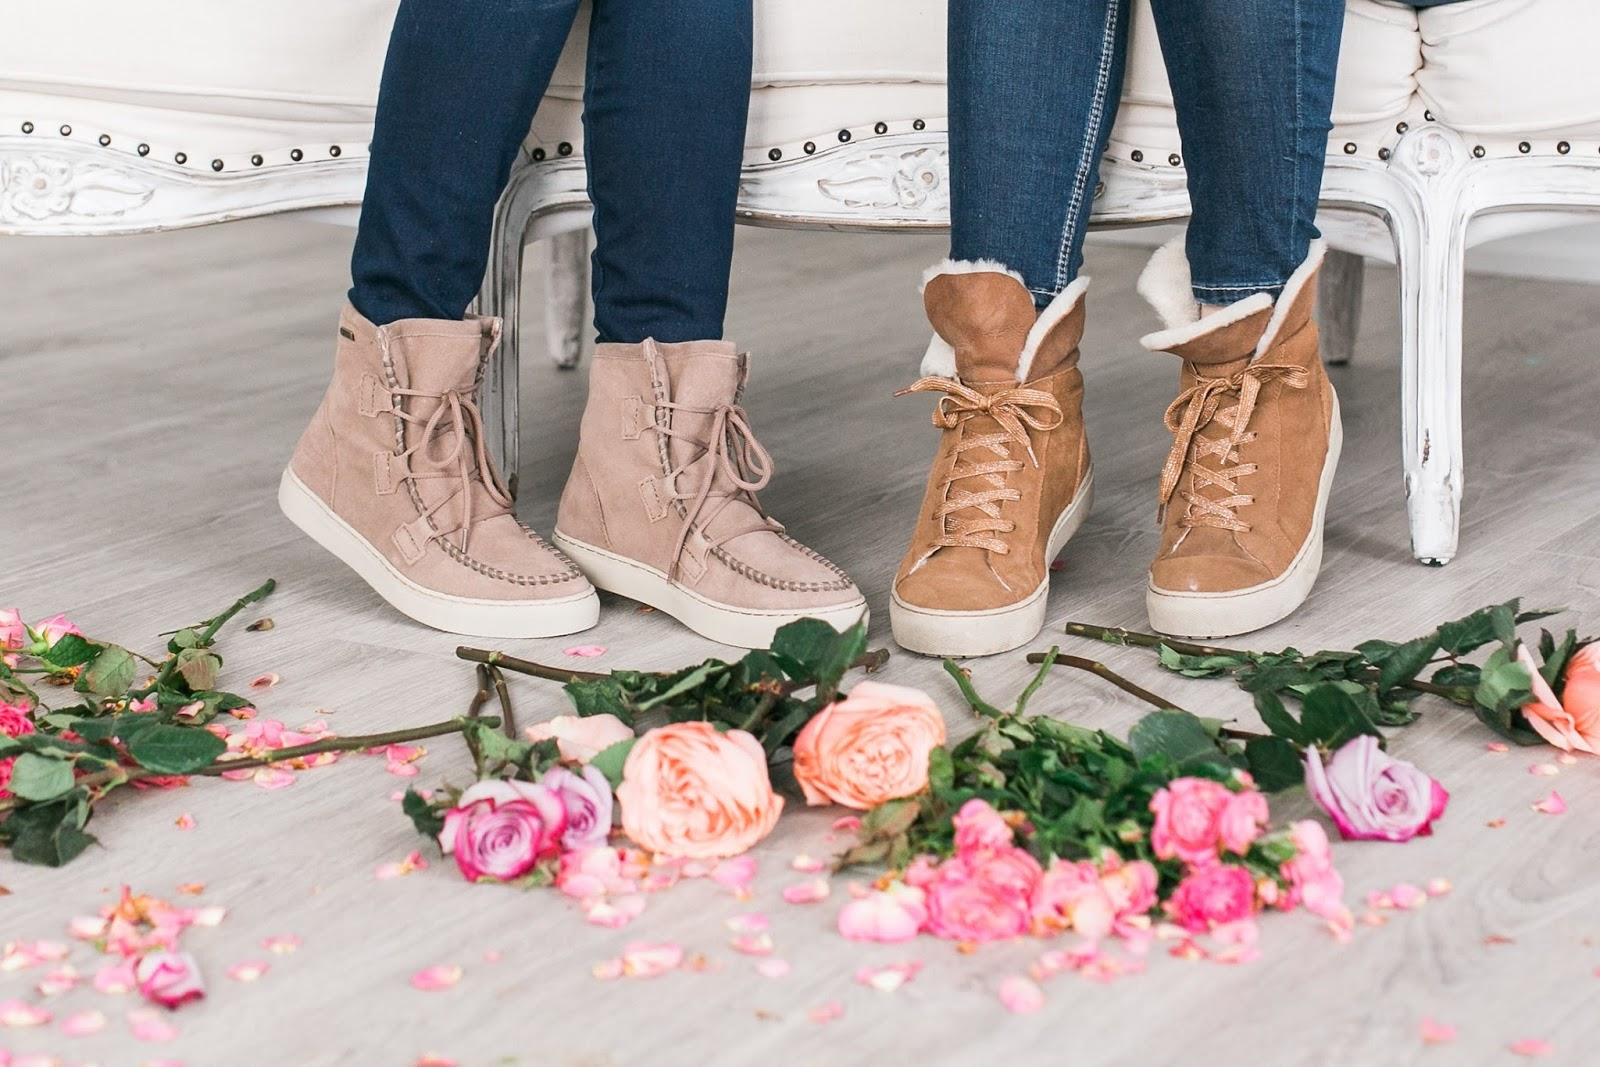 Bijuleni | 2 Transitional Boots You Need For Spring | Cougar Boots